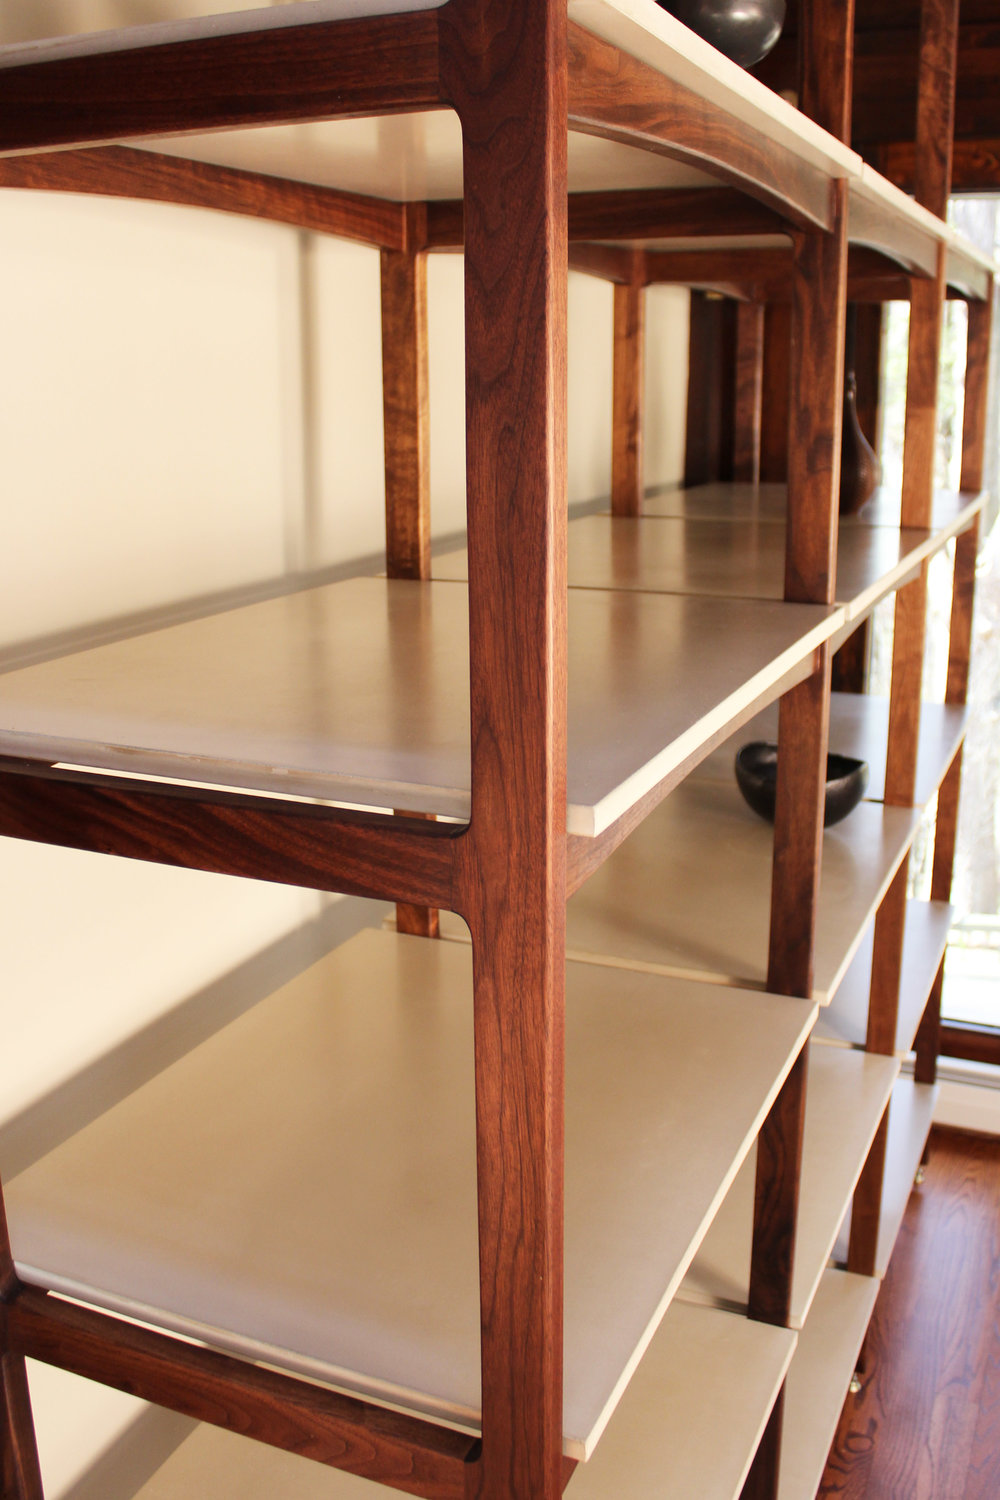 Detail of walnut joinery